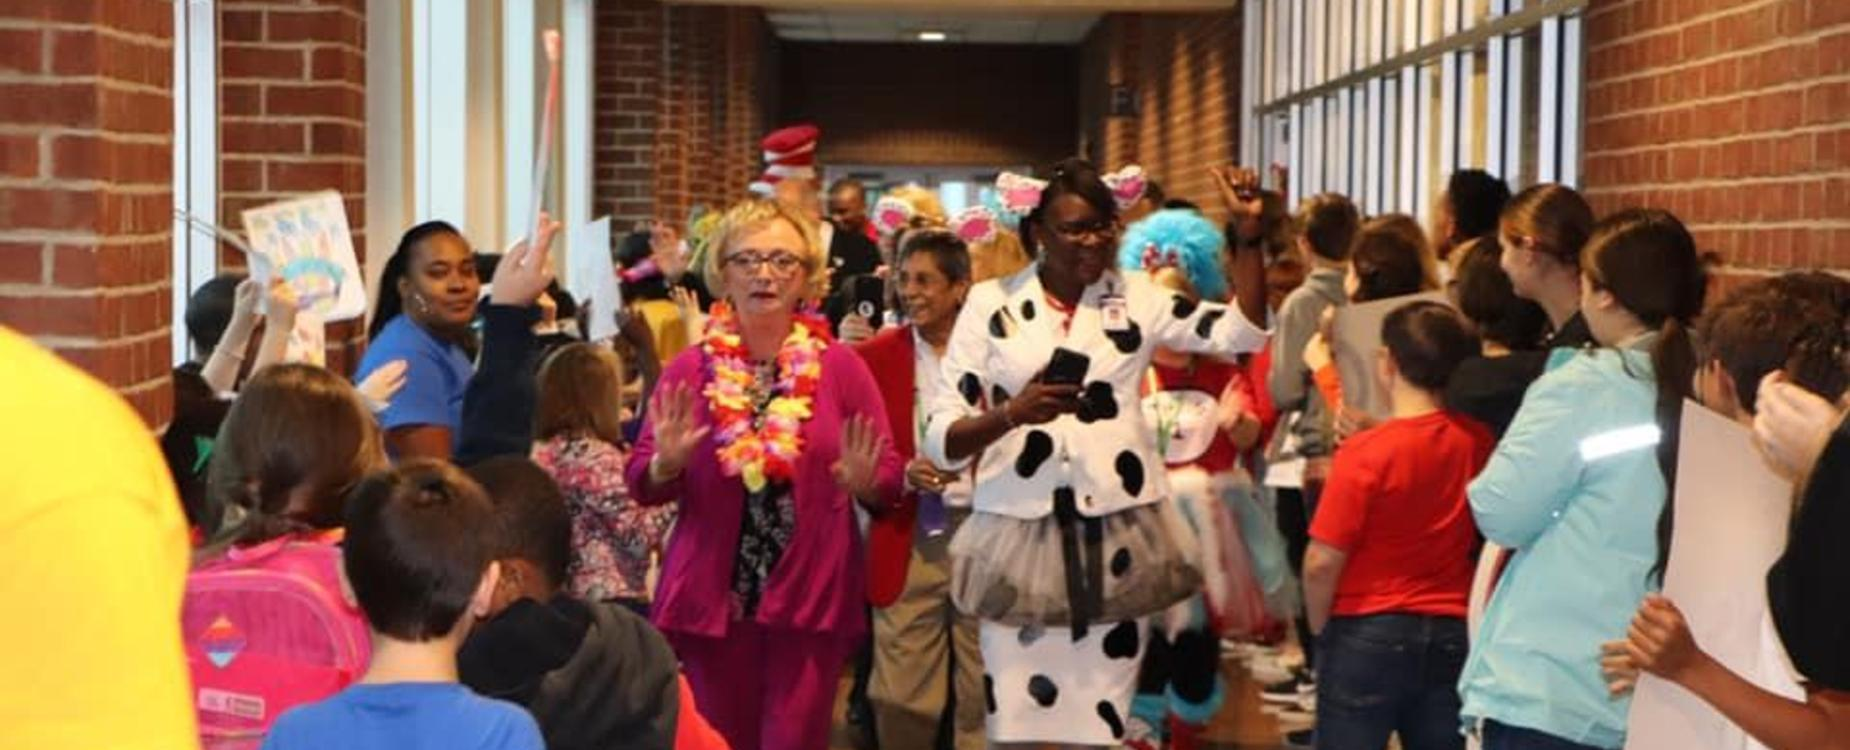 A Celebration: Dr. Wright Celebrates with PCSD